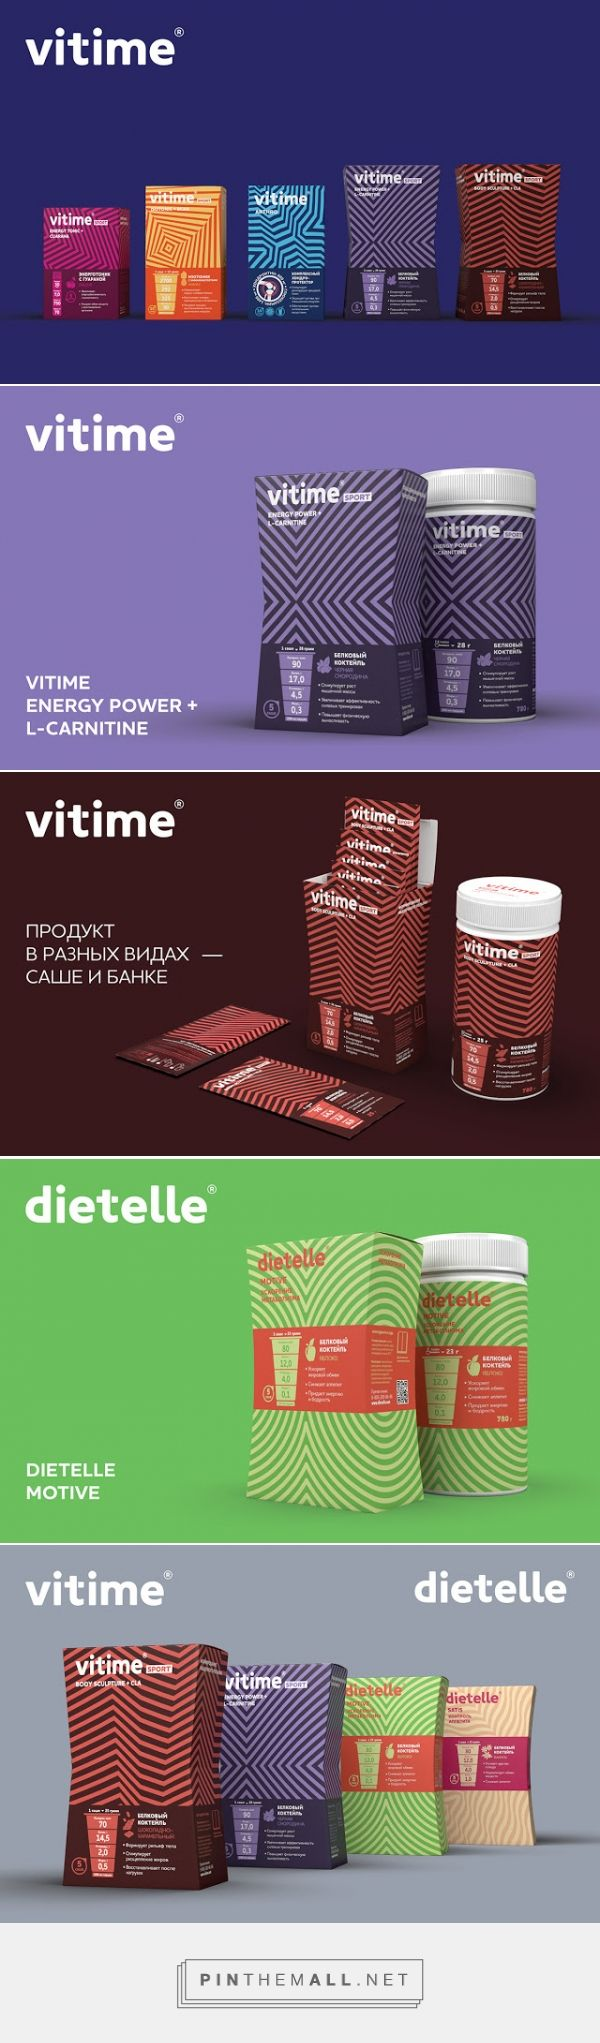 Dietelle & Vitime - Packaging of the World - Creative Package Design Gallery - http://www.packagingoftheworld.com/2016/02/dietelle-vitime.html